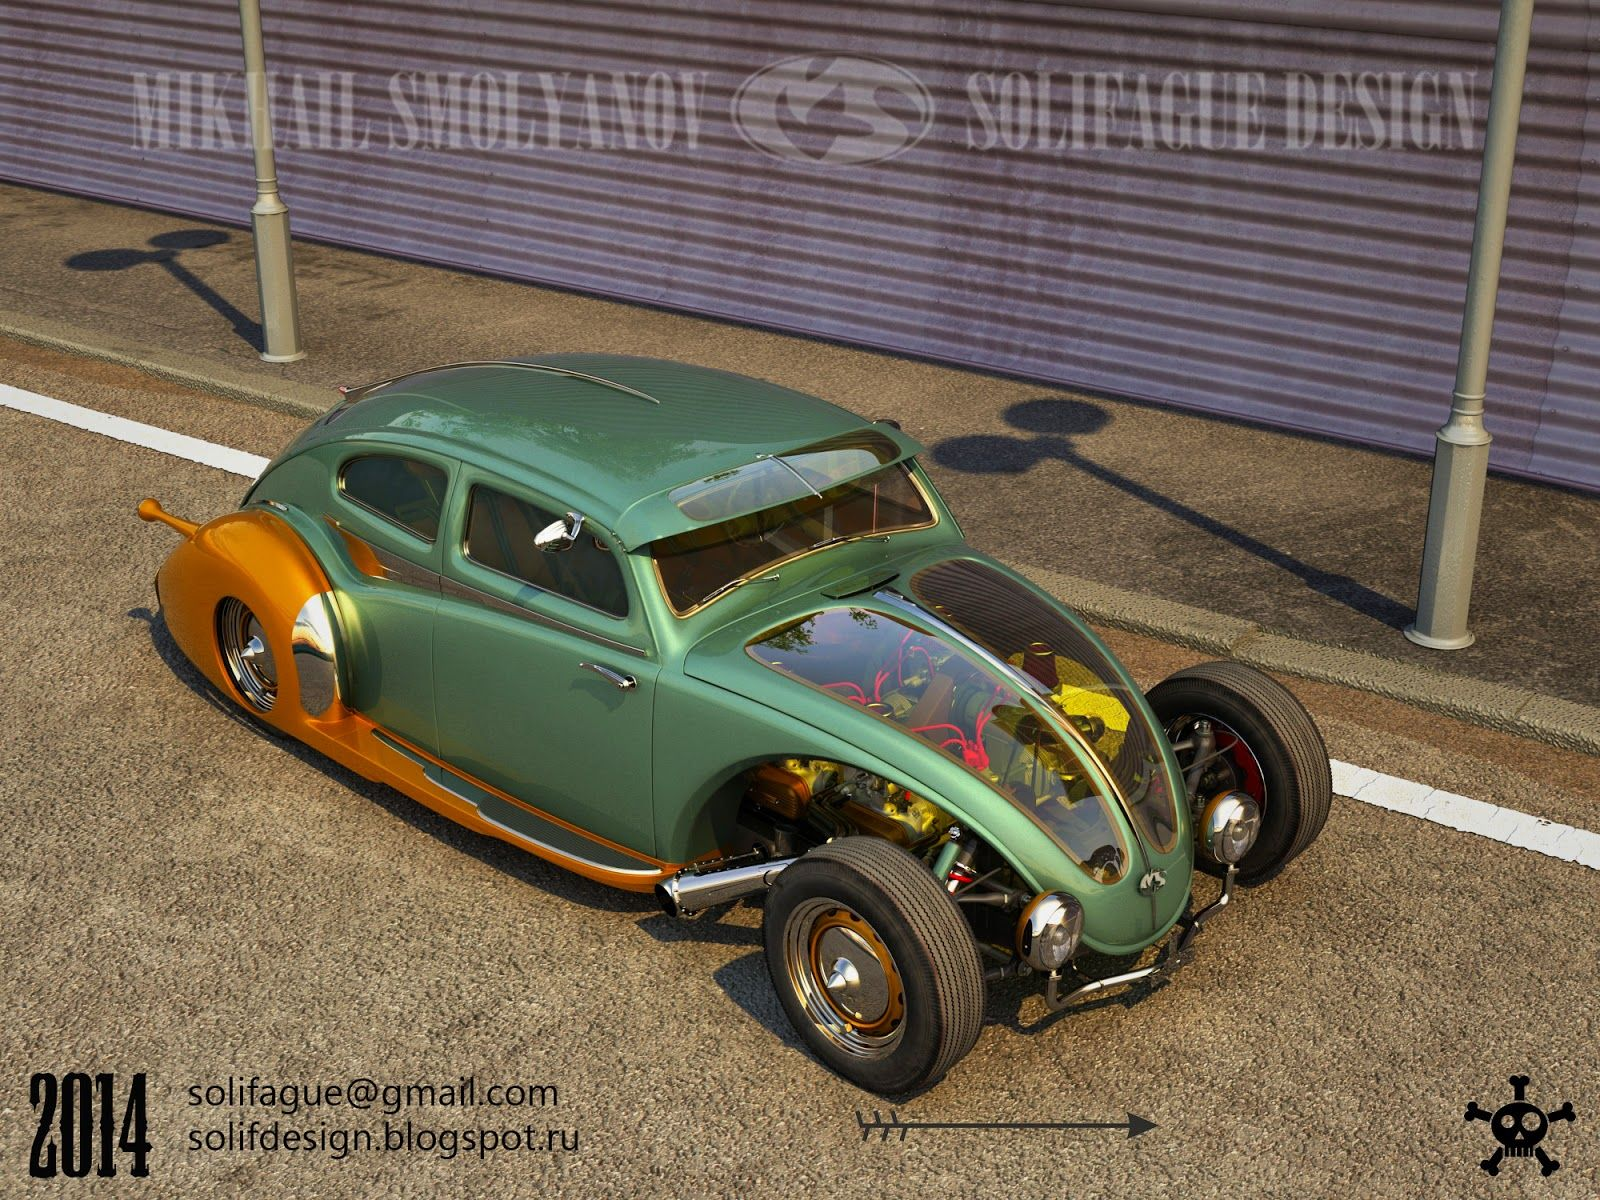 Design of beetle car - Vw Beetle Custom Solifague Design Art Deco Style Opened The Engine Paired